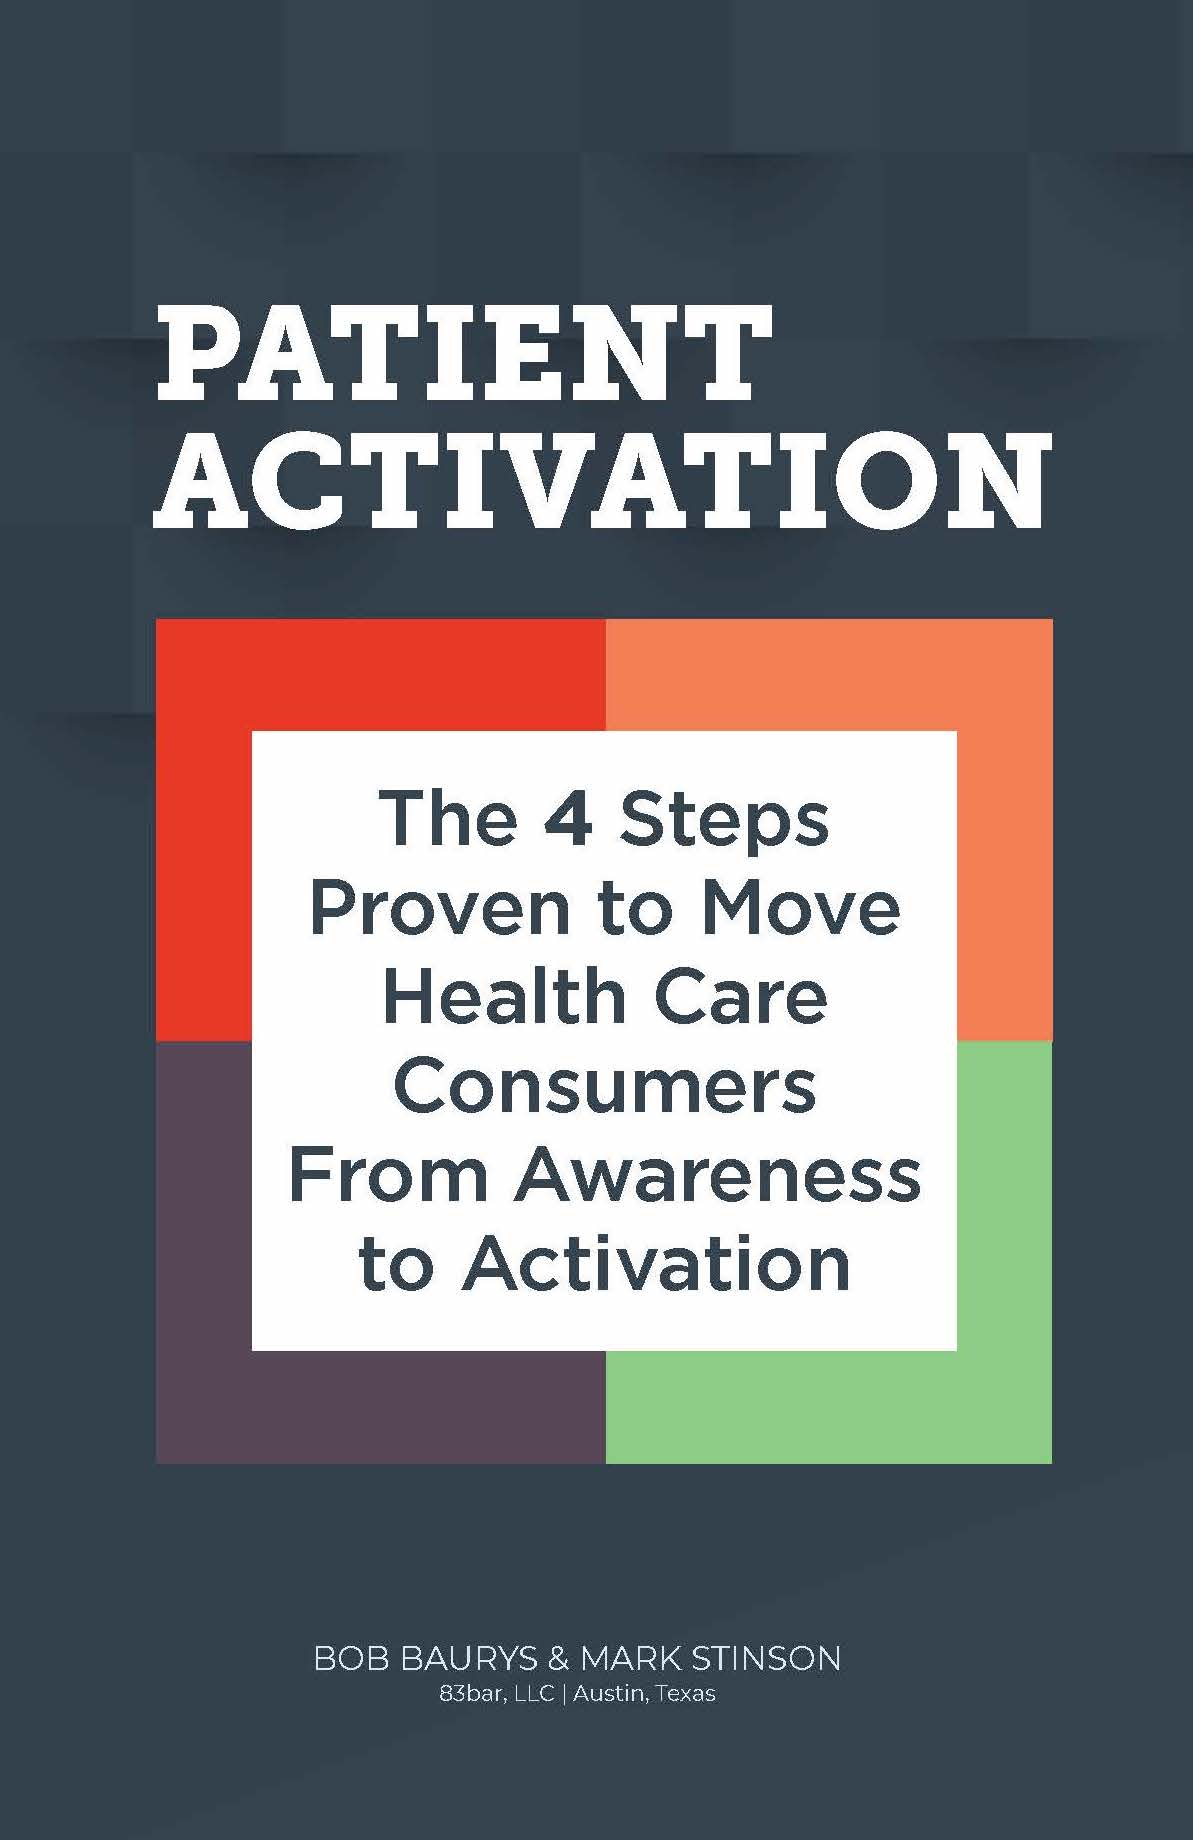 Patient Activation, by Baurys and Stinson